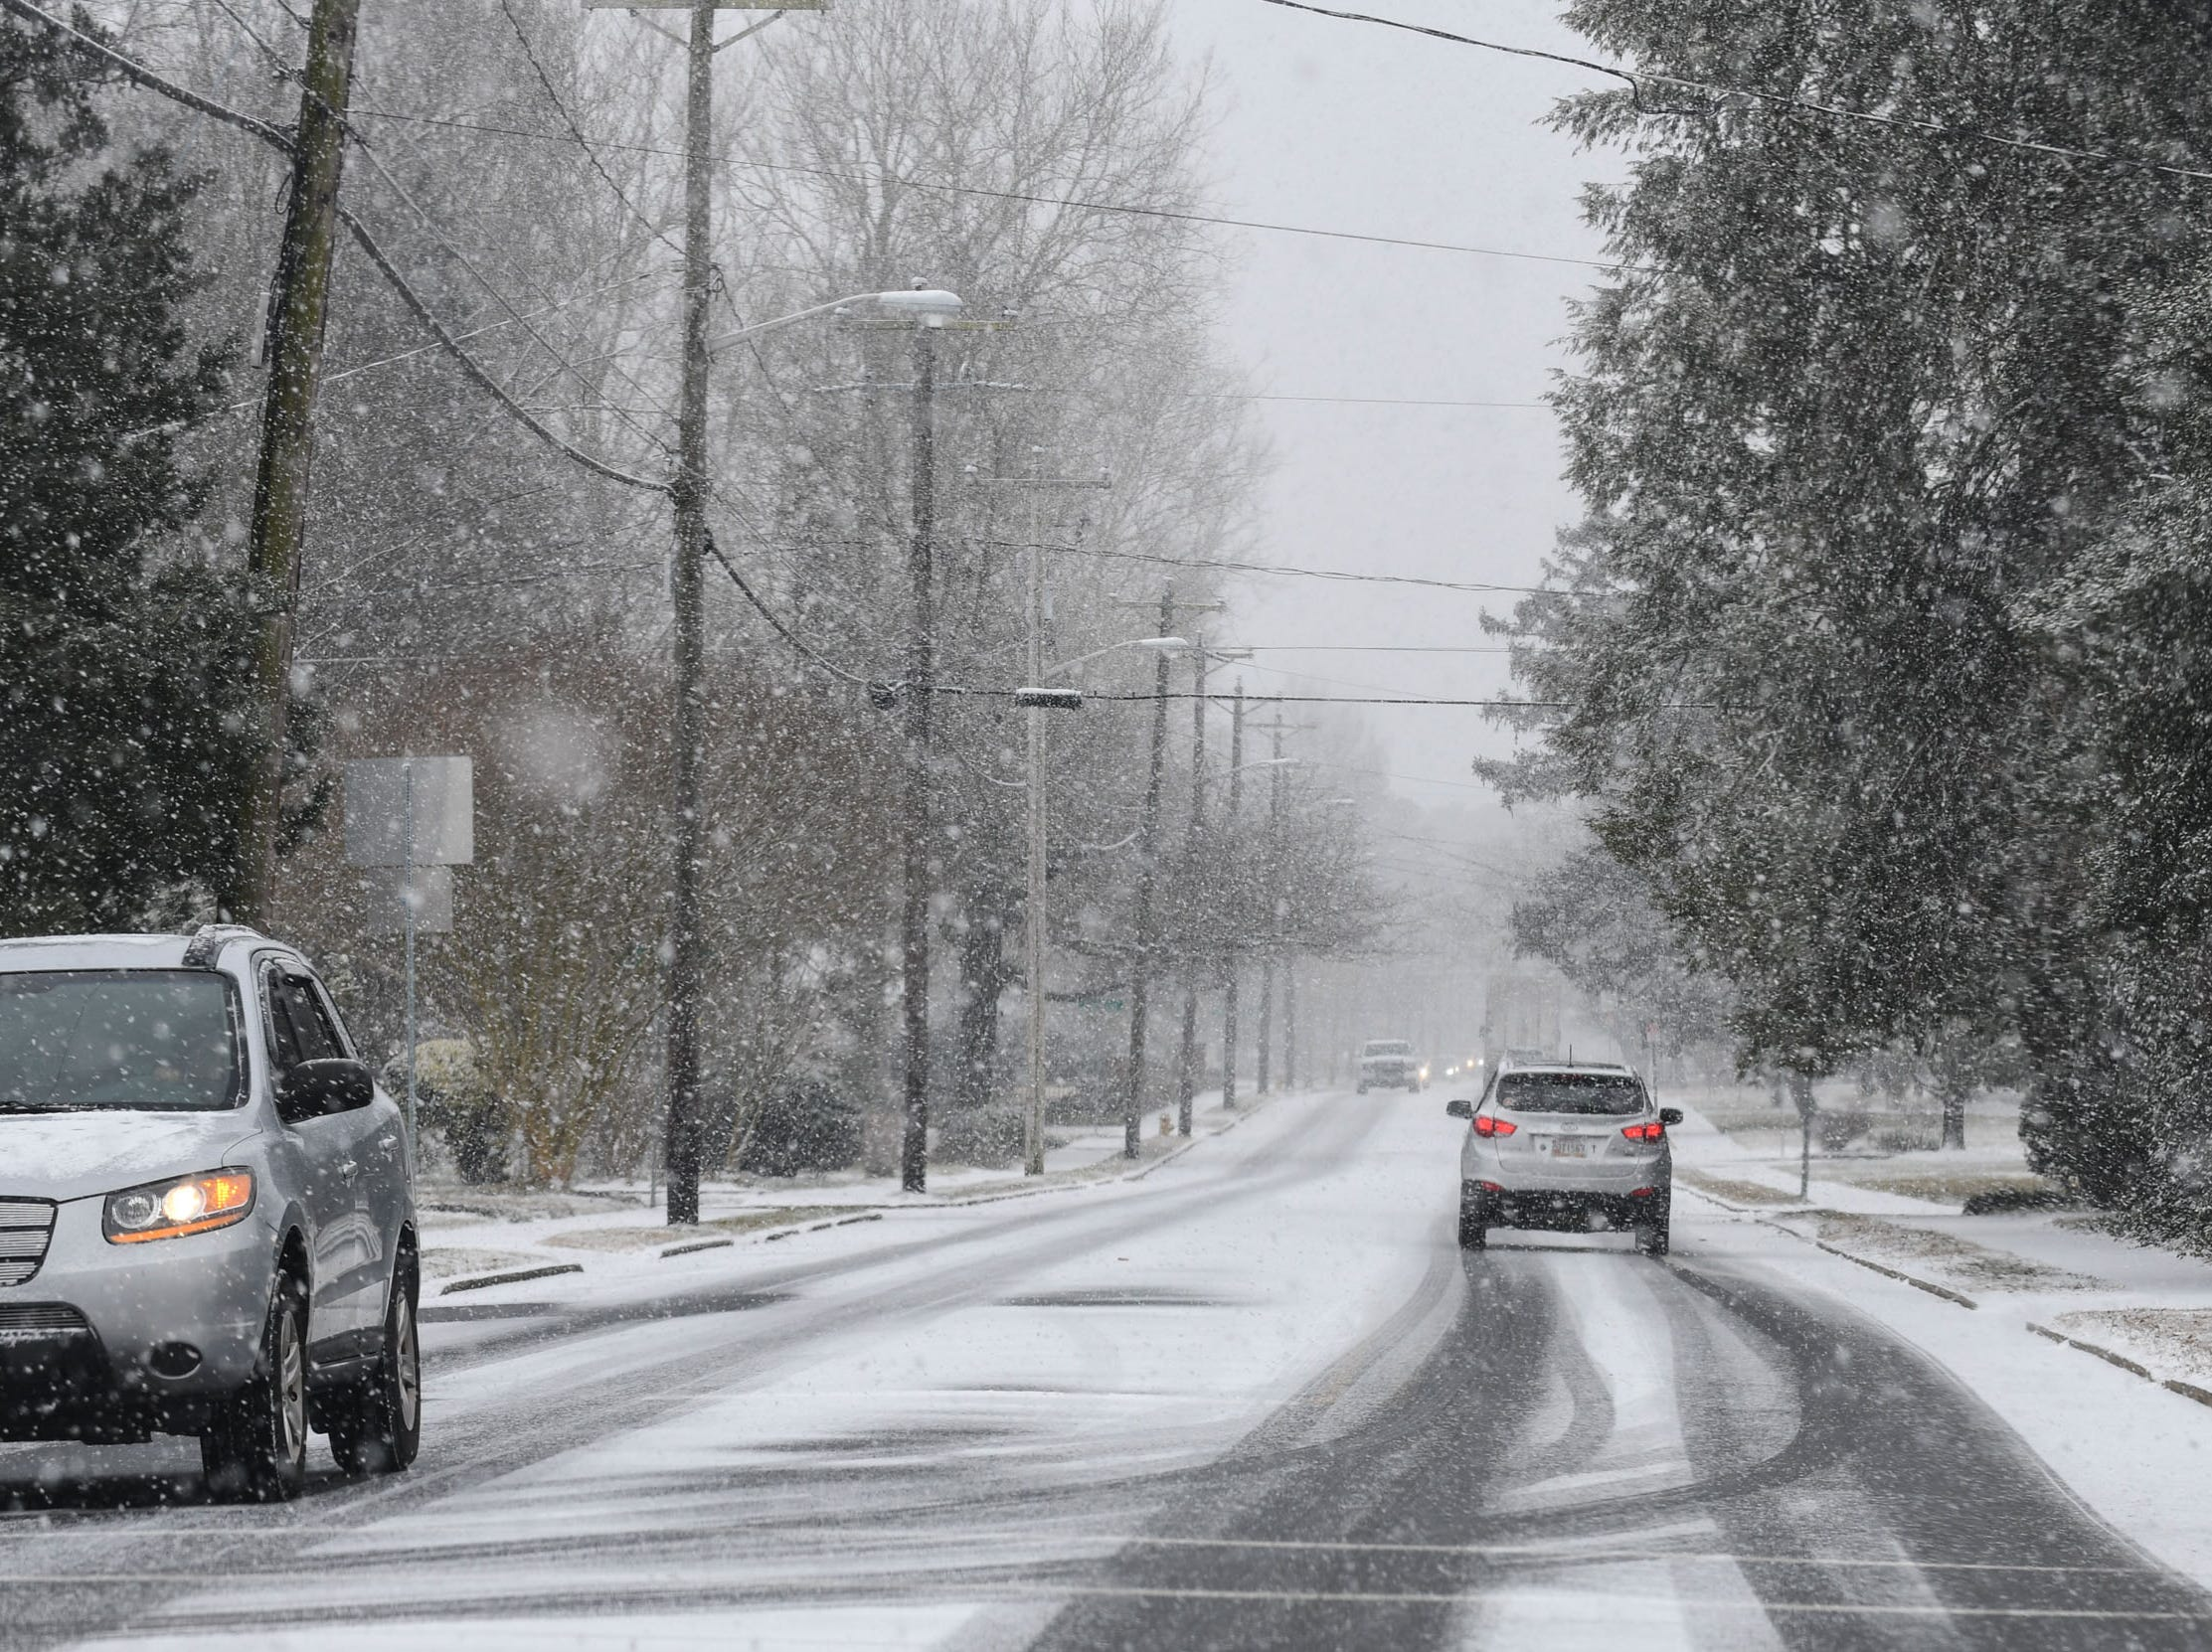 Snow falling is starting to accumulate on Camden ave. in Salisbury on Friday, Feb. 1, 2019.